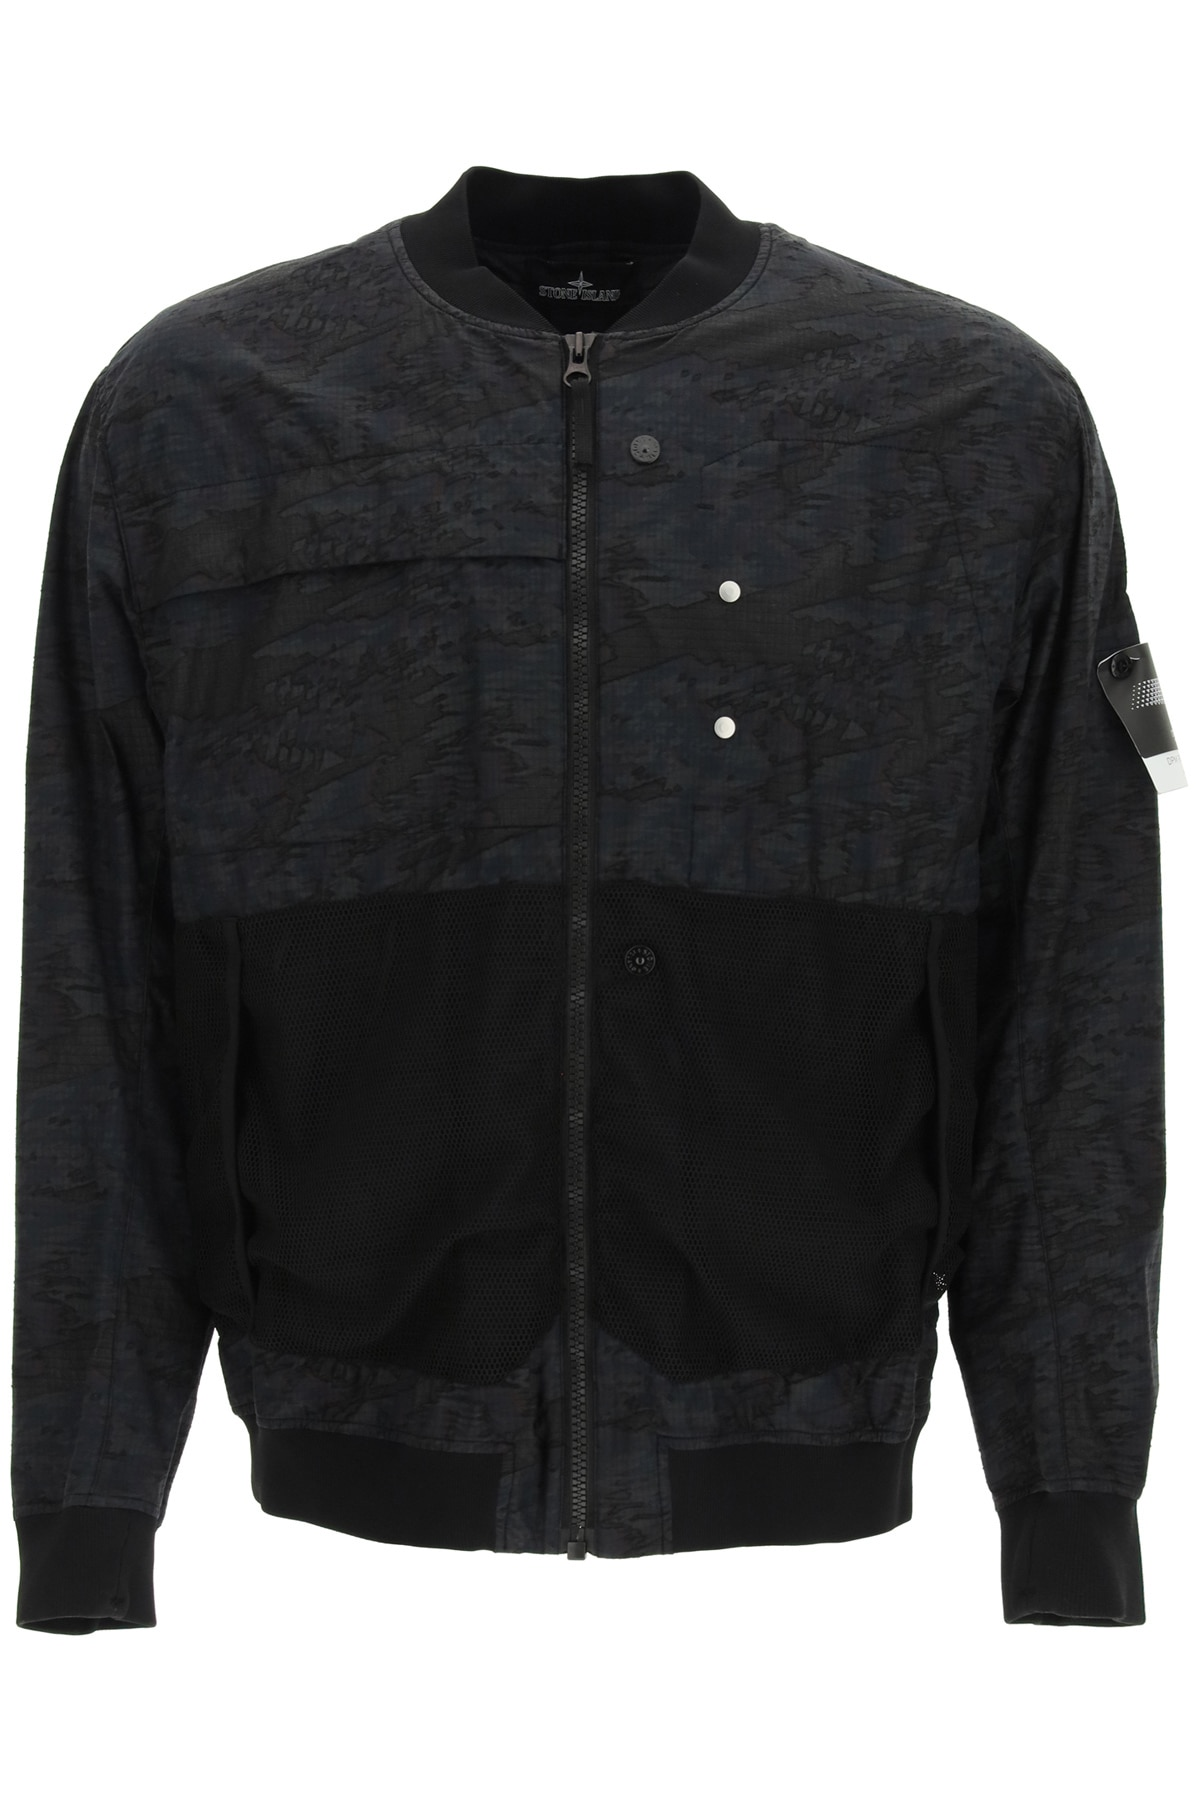 STONE ISLAND SHADOW PROJECT BOMBER JACKET IN DPM RIPSTOP DEVORE' L Blue Cotton, Technical